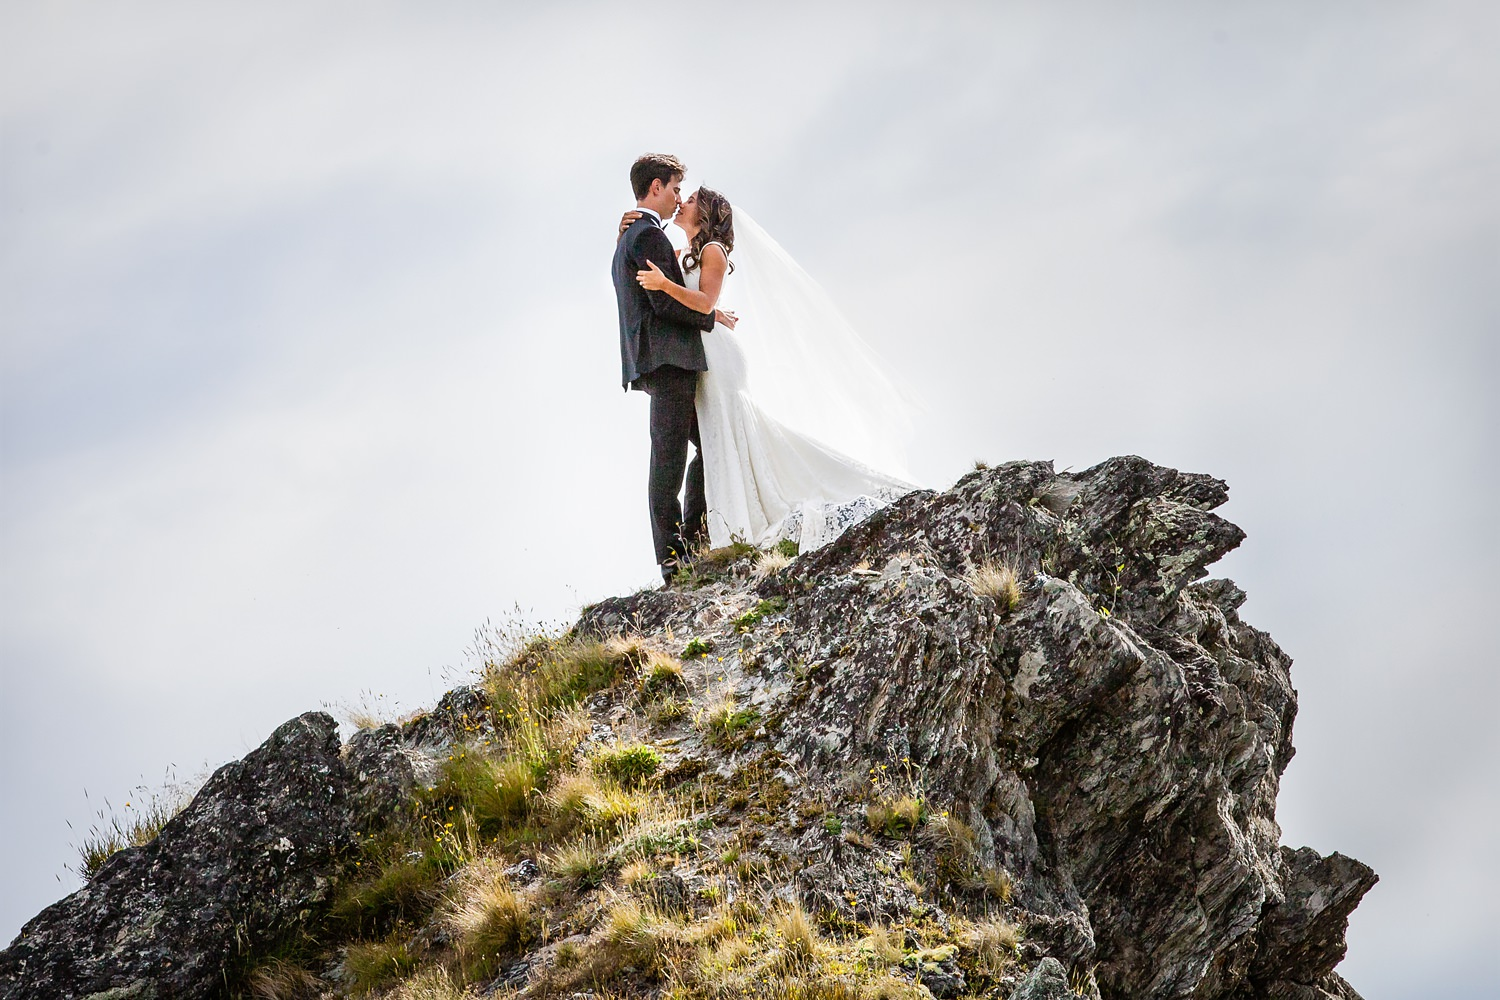 Wanaka epic mountain vistas - say I do in Wanaka